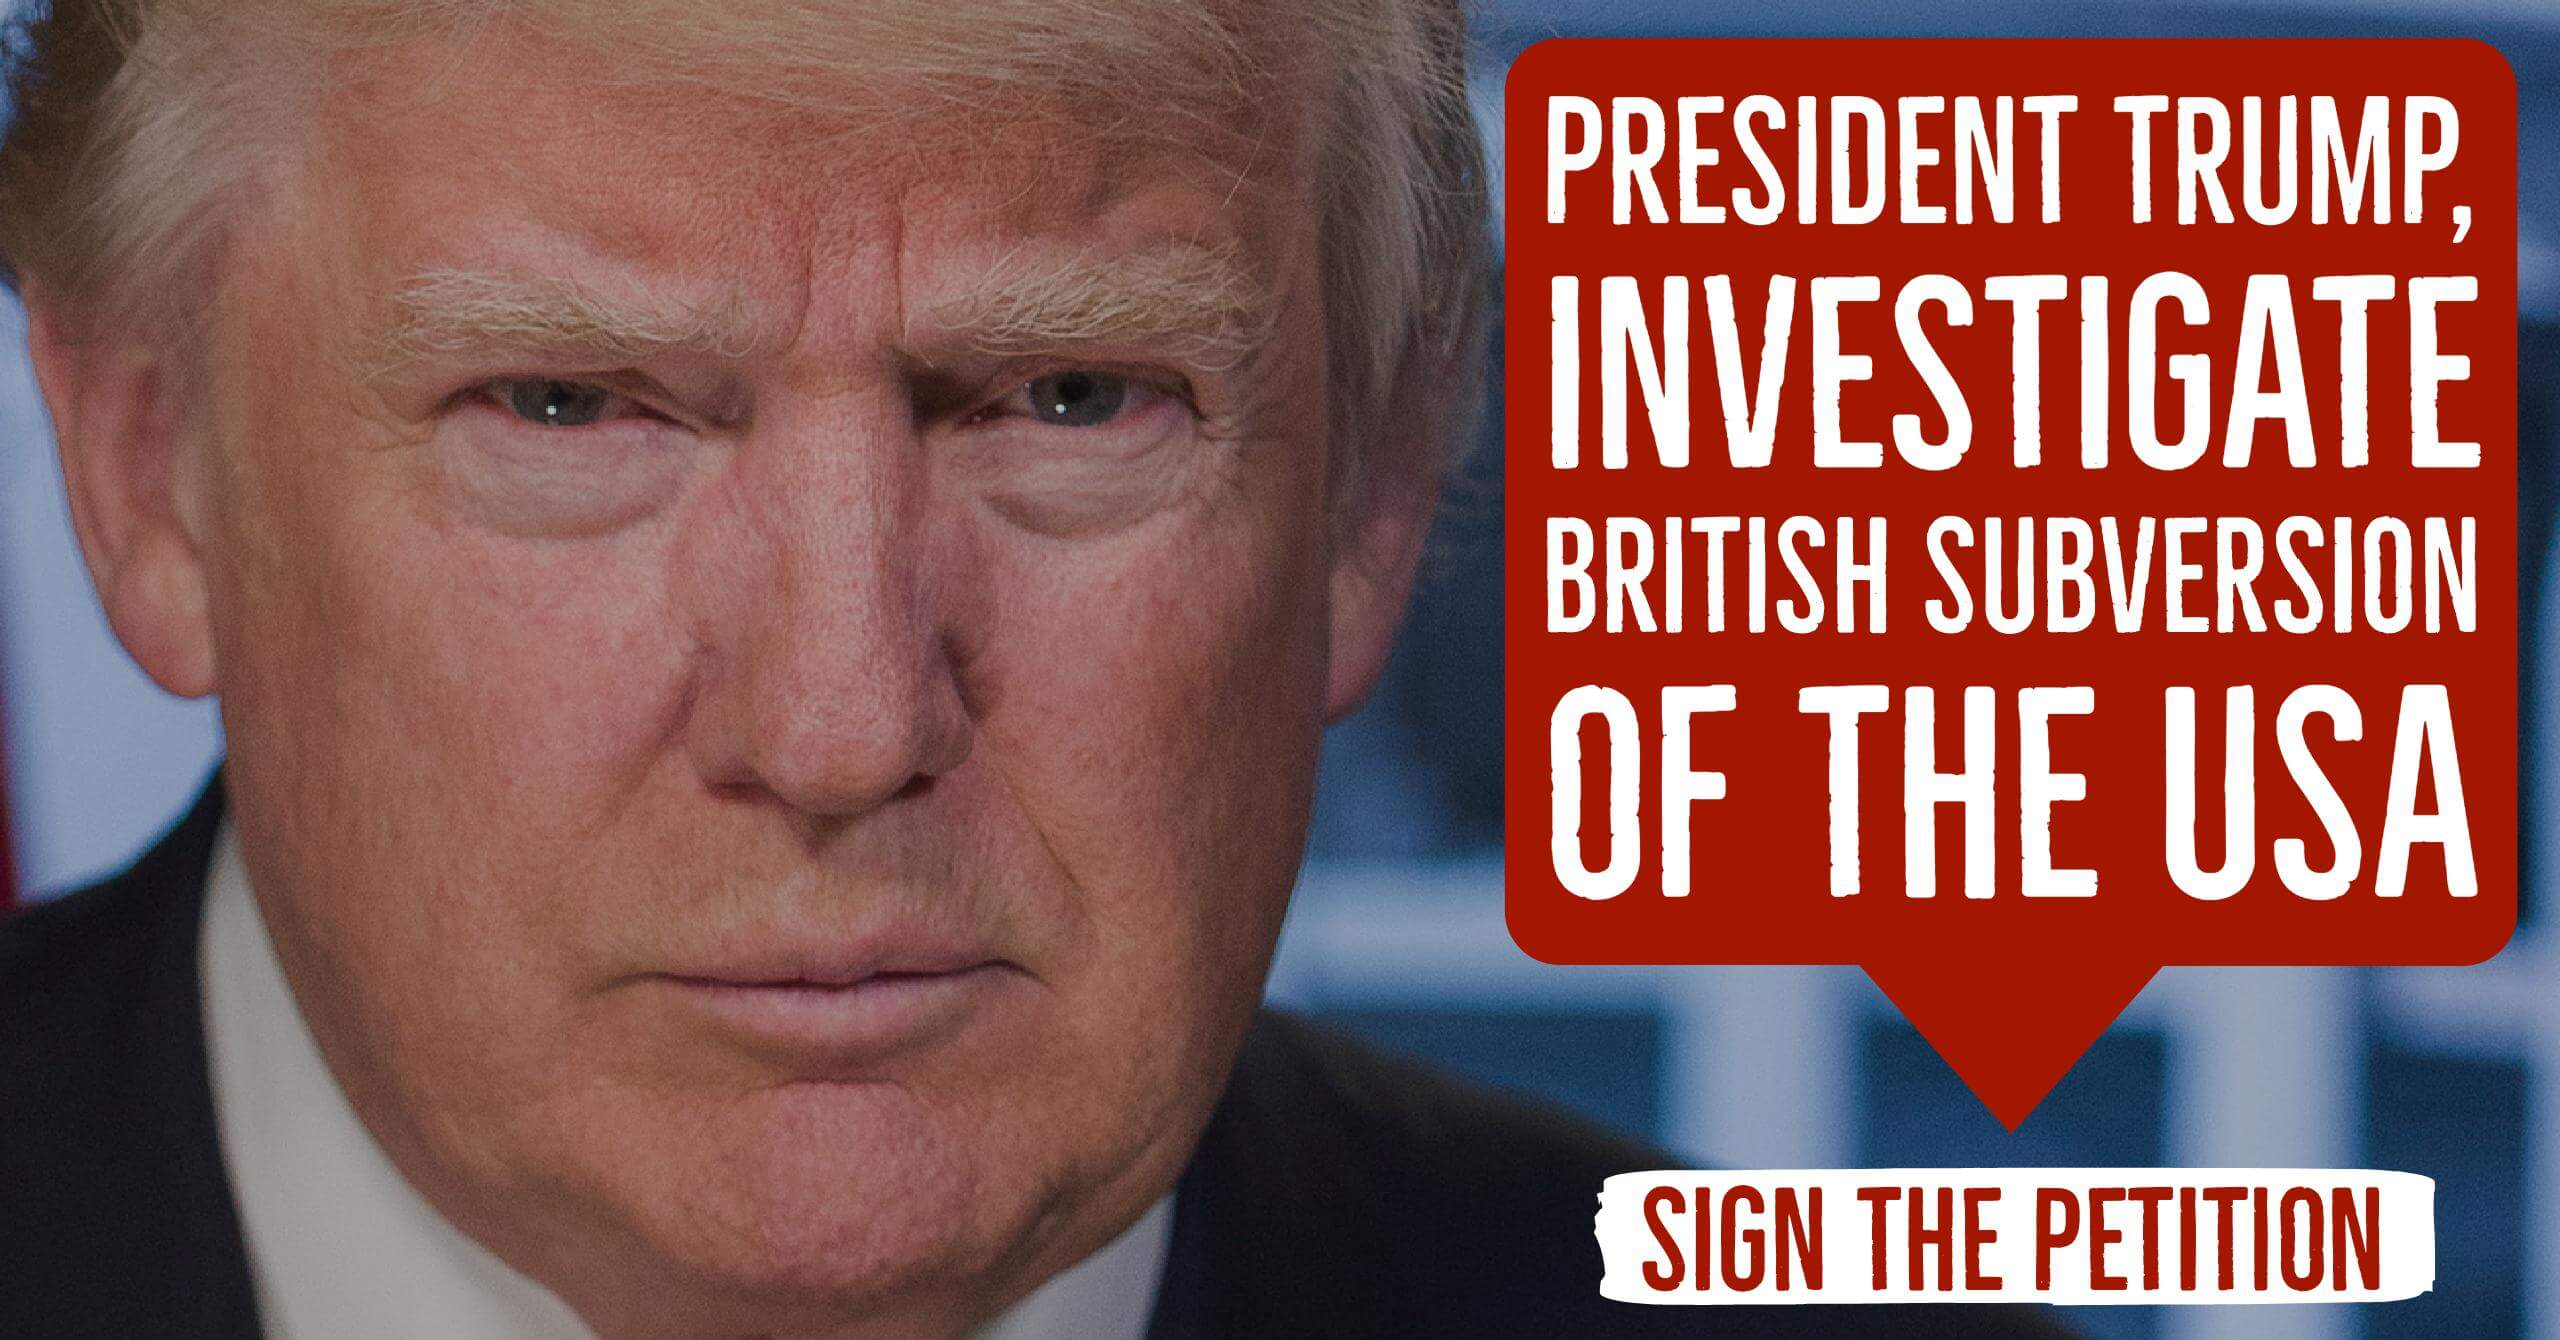 President Trump, Investigate British Subversion of the USA